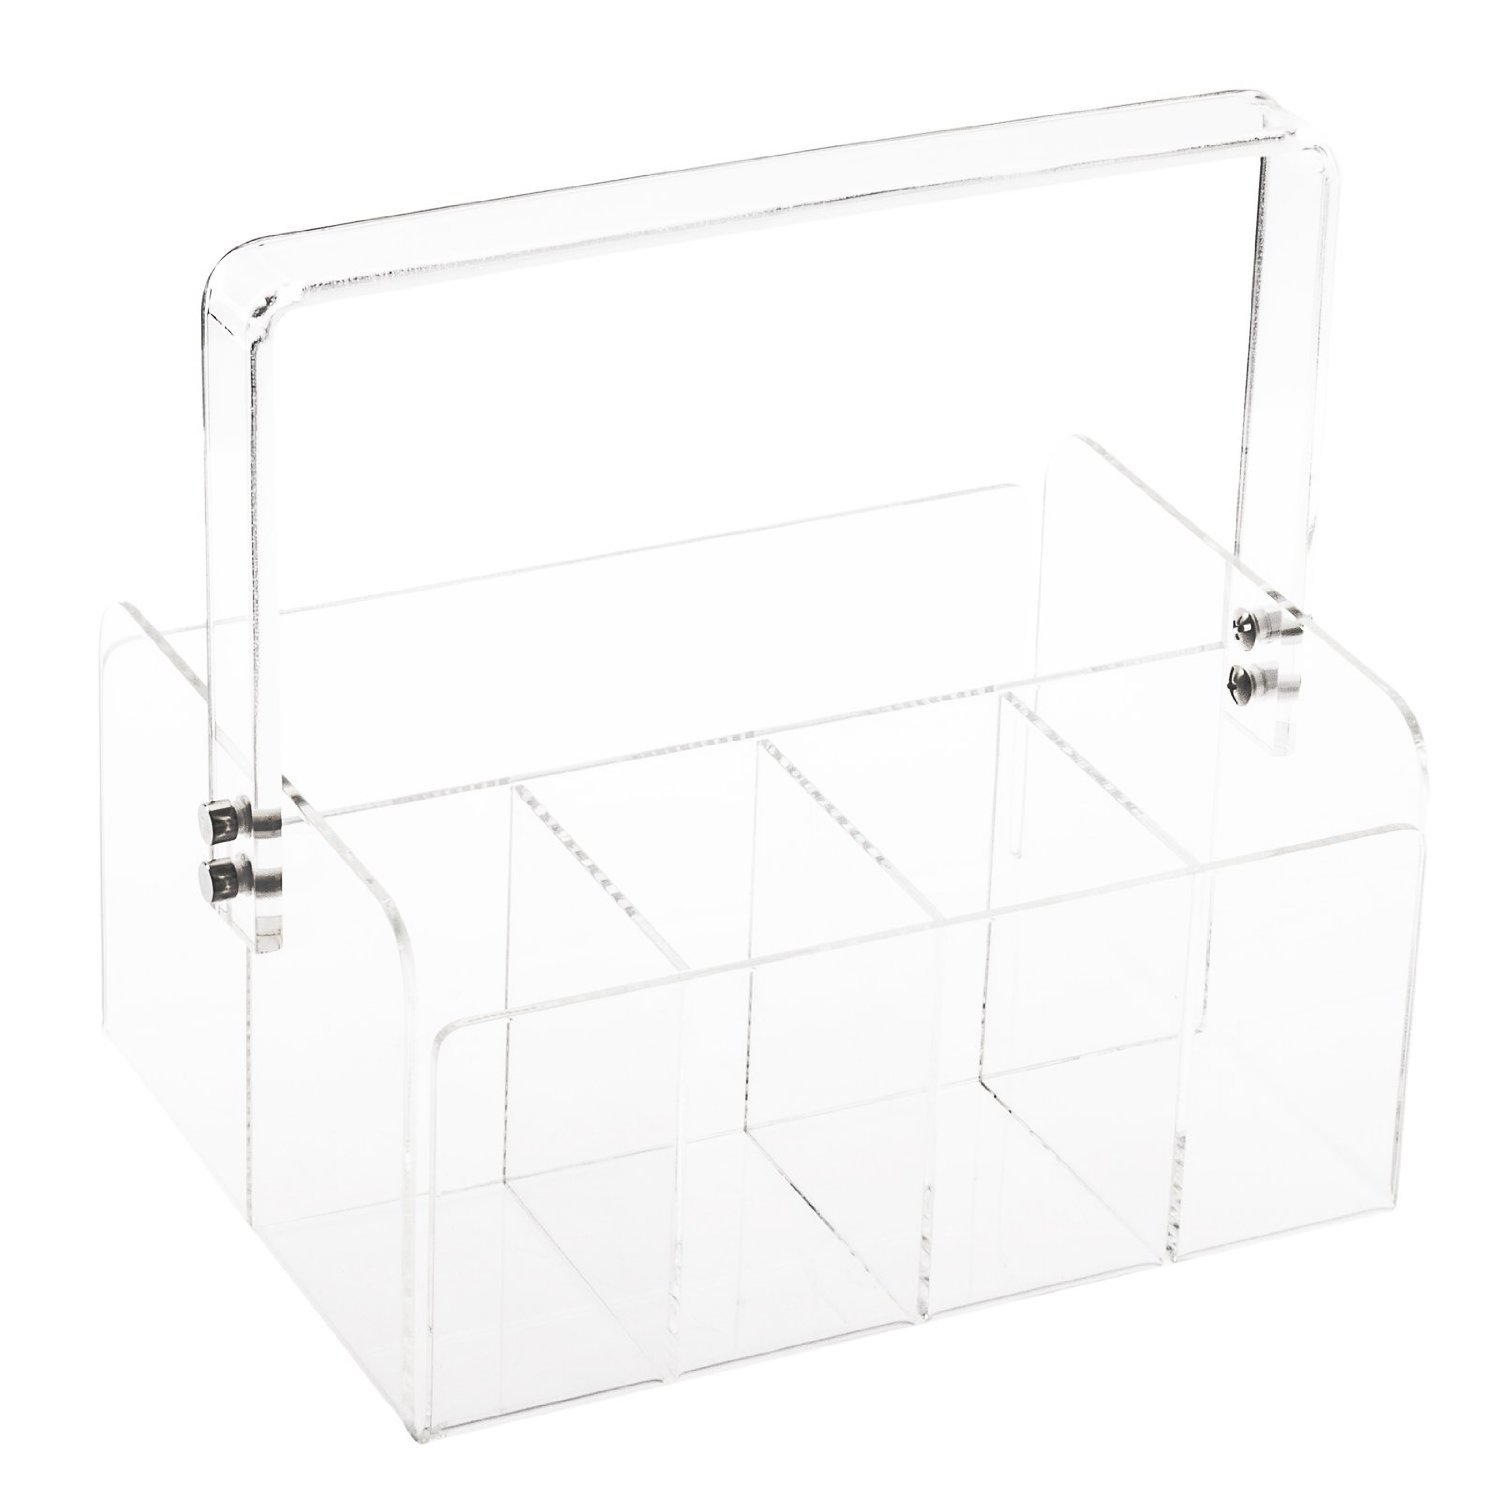 Huang Acrylic Portable Silverware Caddy, Clear by Huang Acrylic